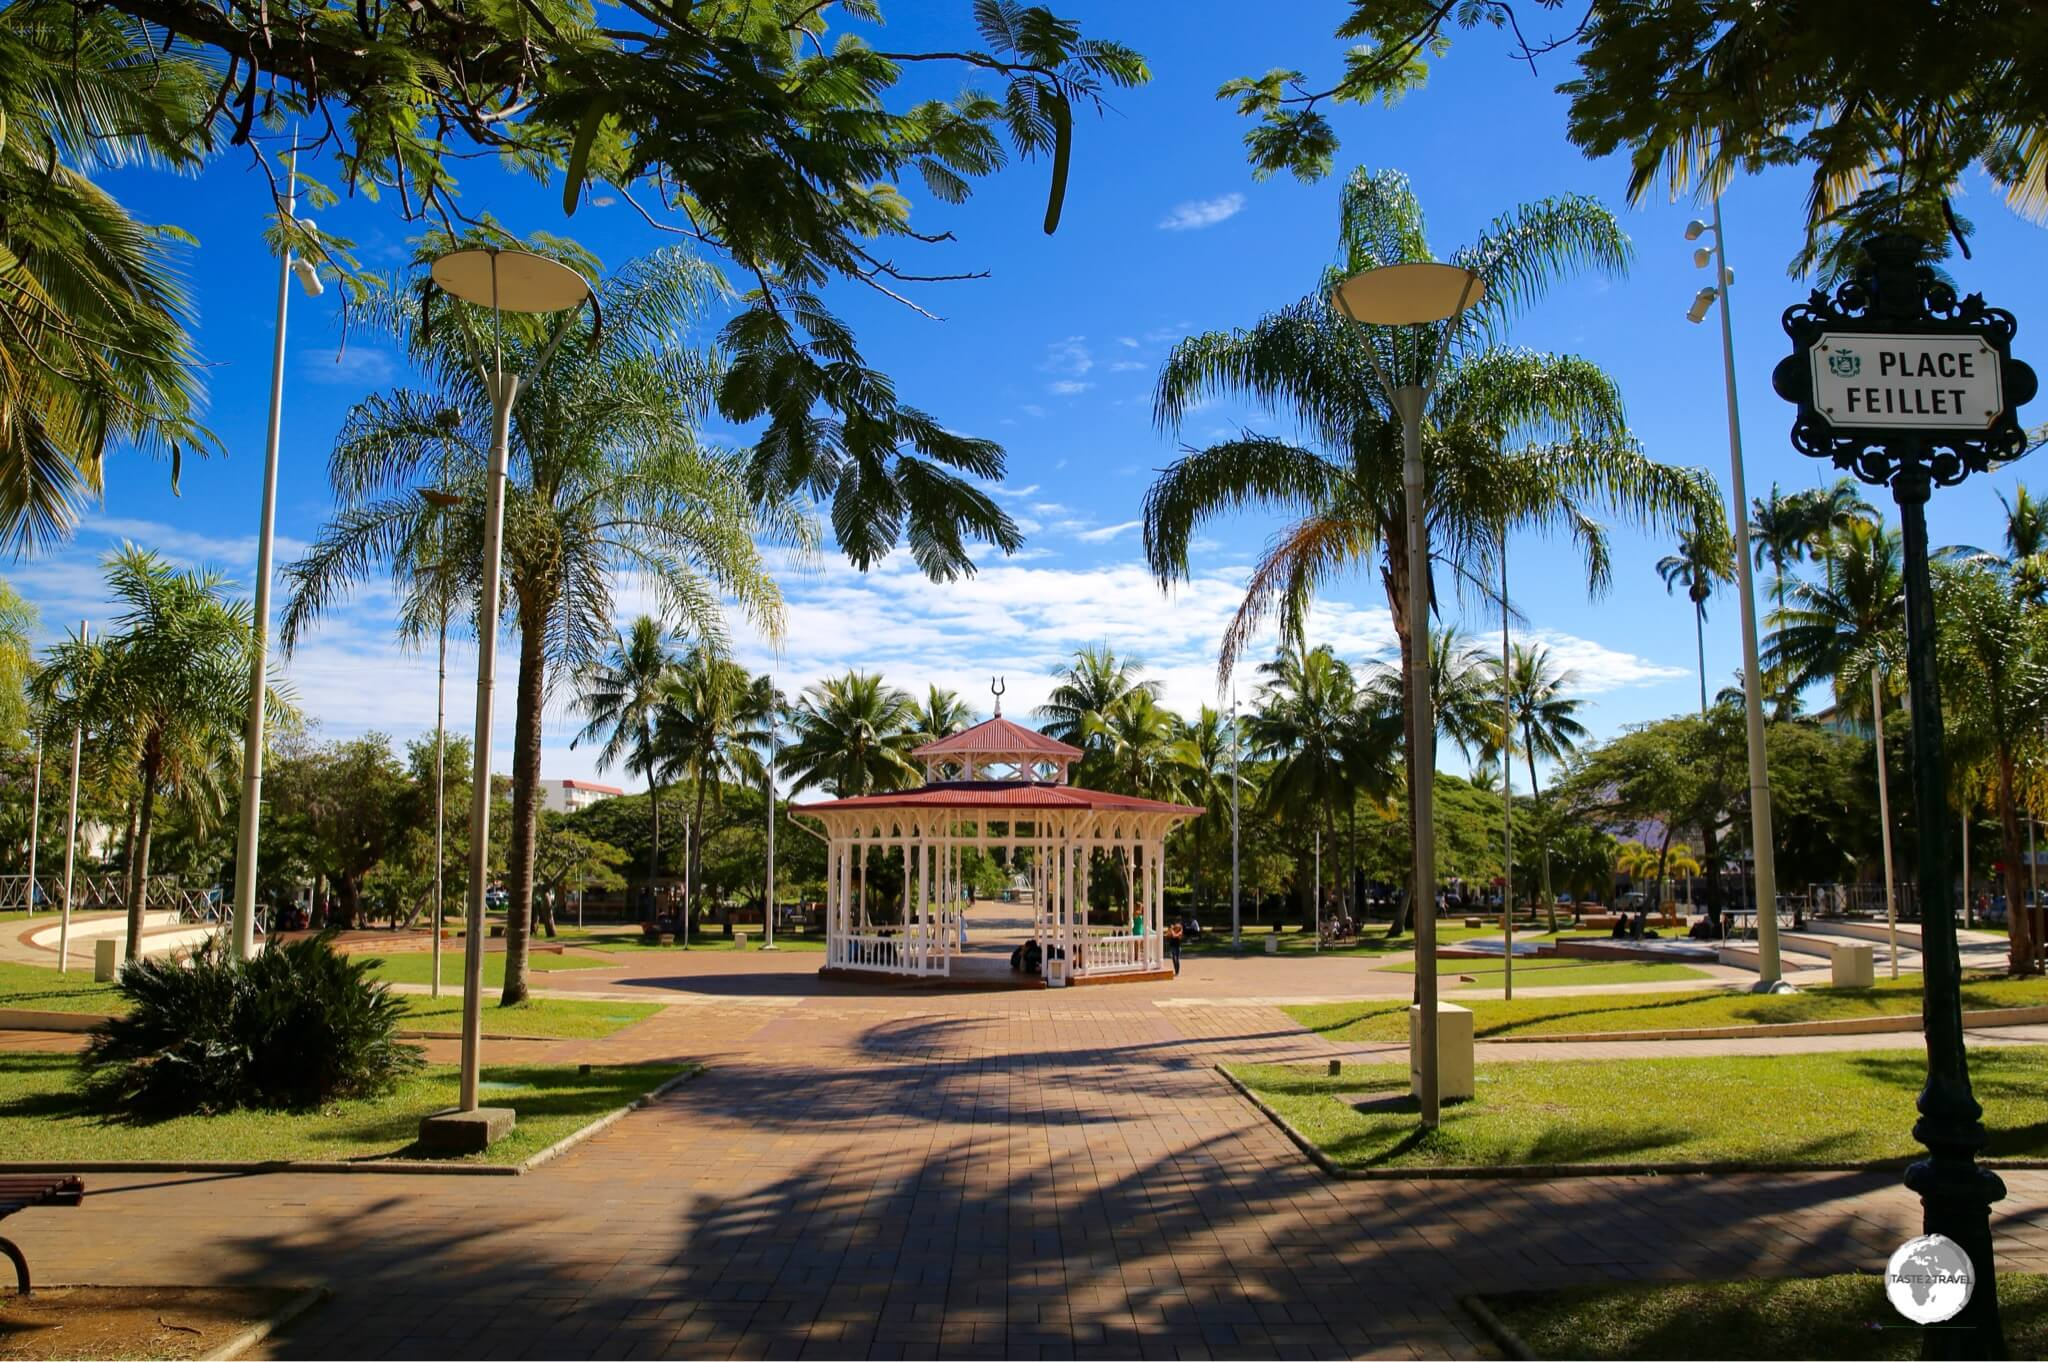 The wooden bandstand at Place des Cocotiers in Noumea.